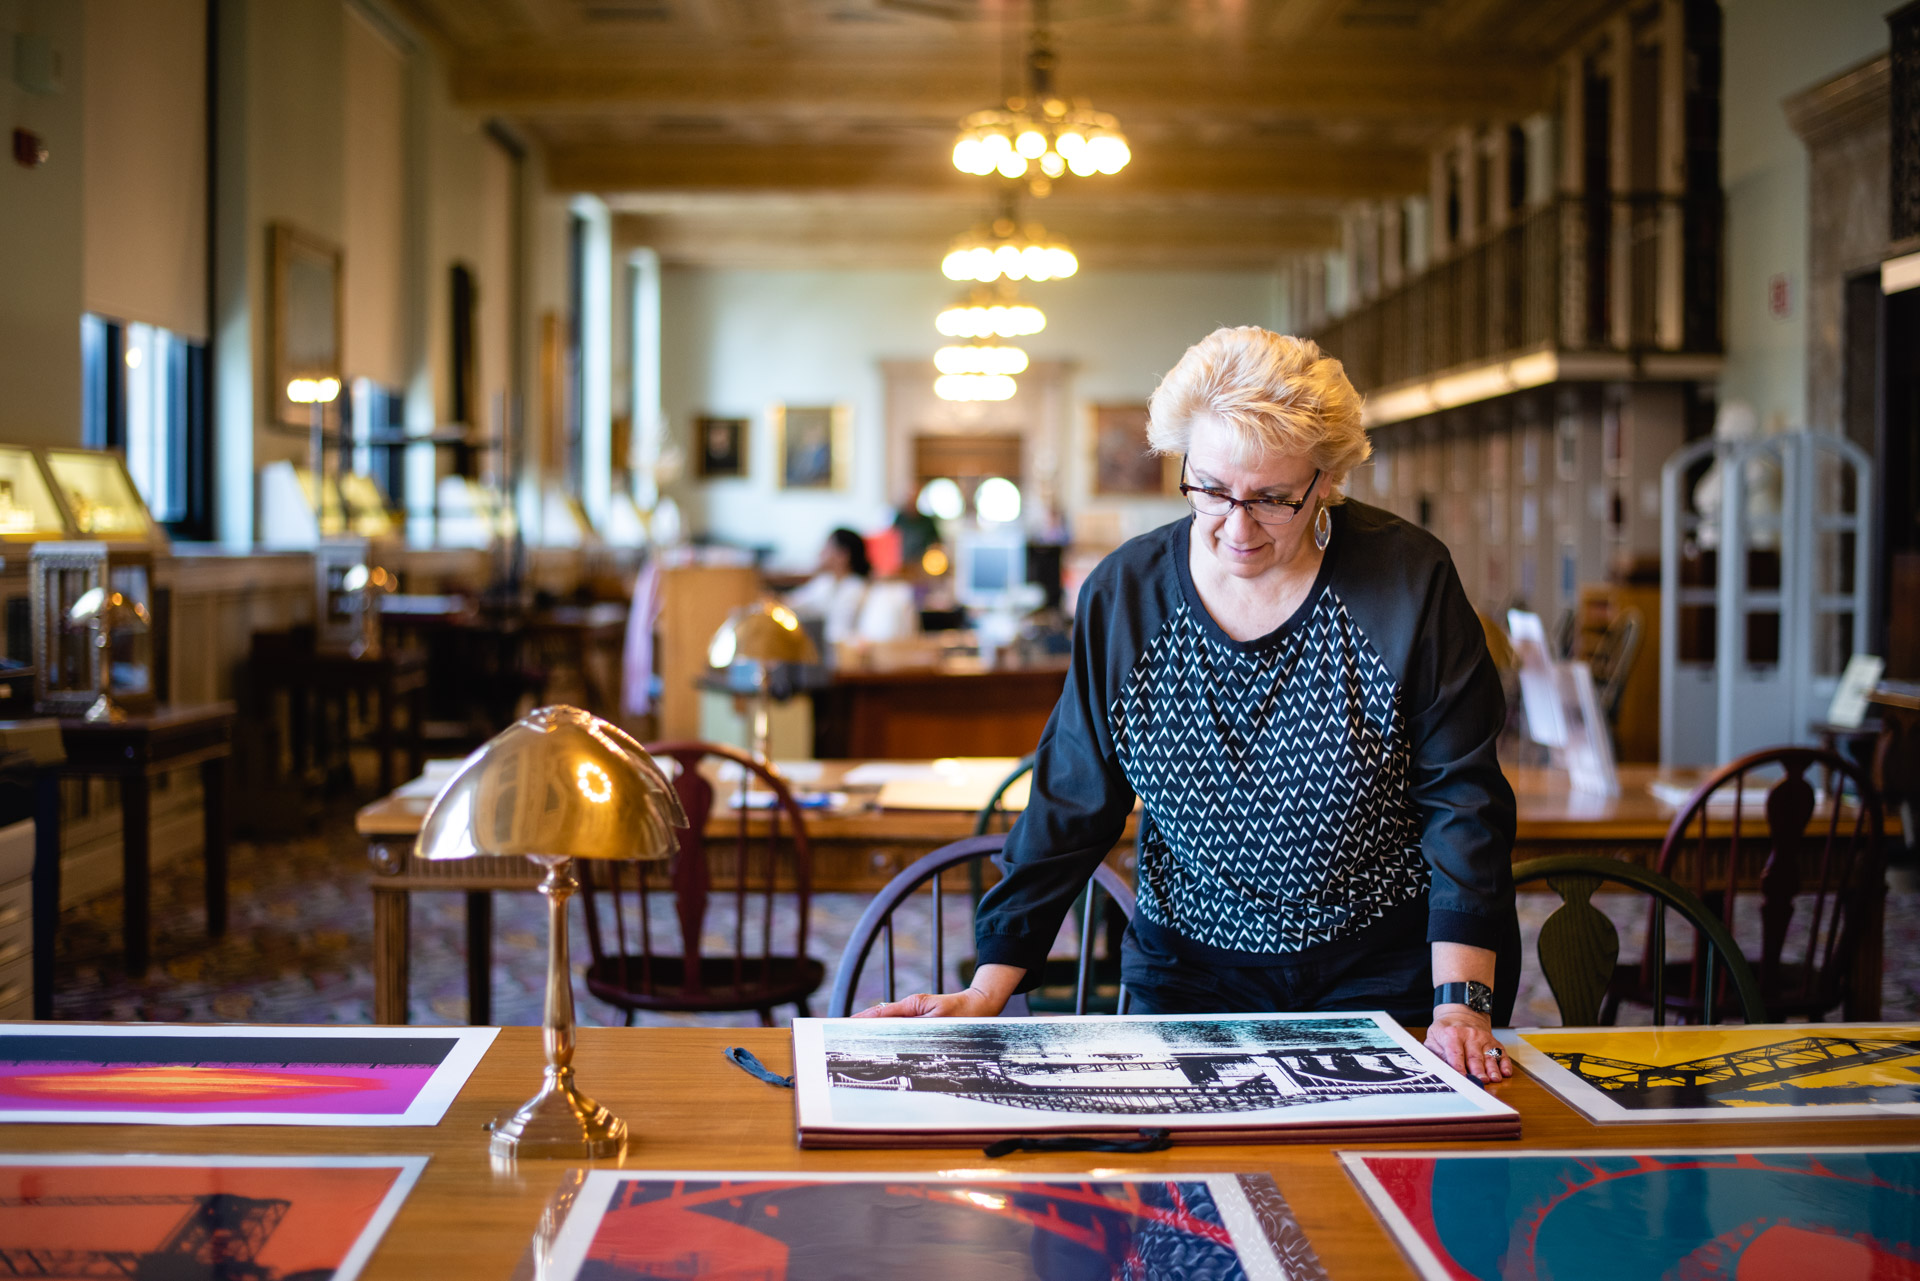 Pam Eyerdam (blond haired woman) standing at a table, looking at large art prints in the Special Collections Department.